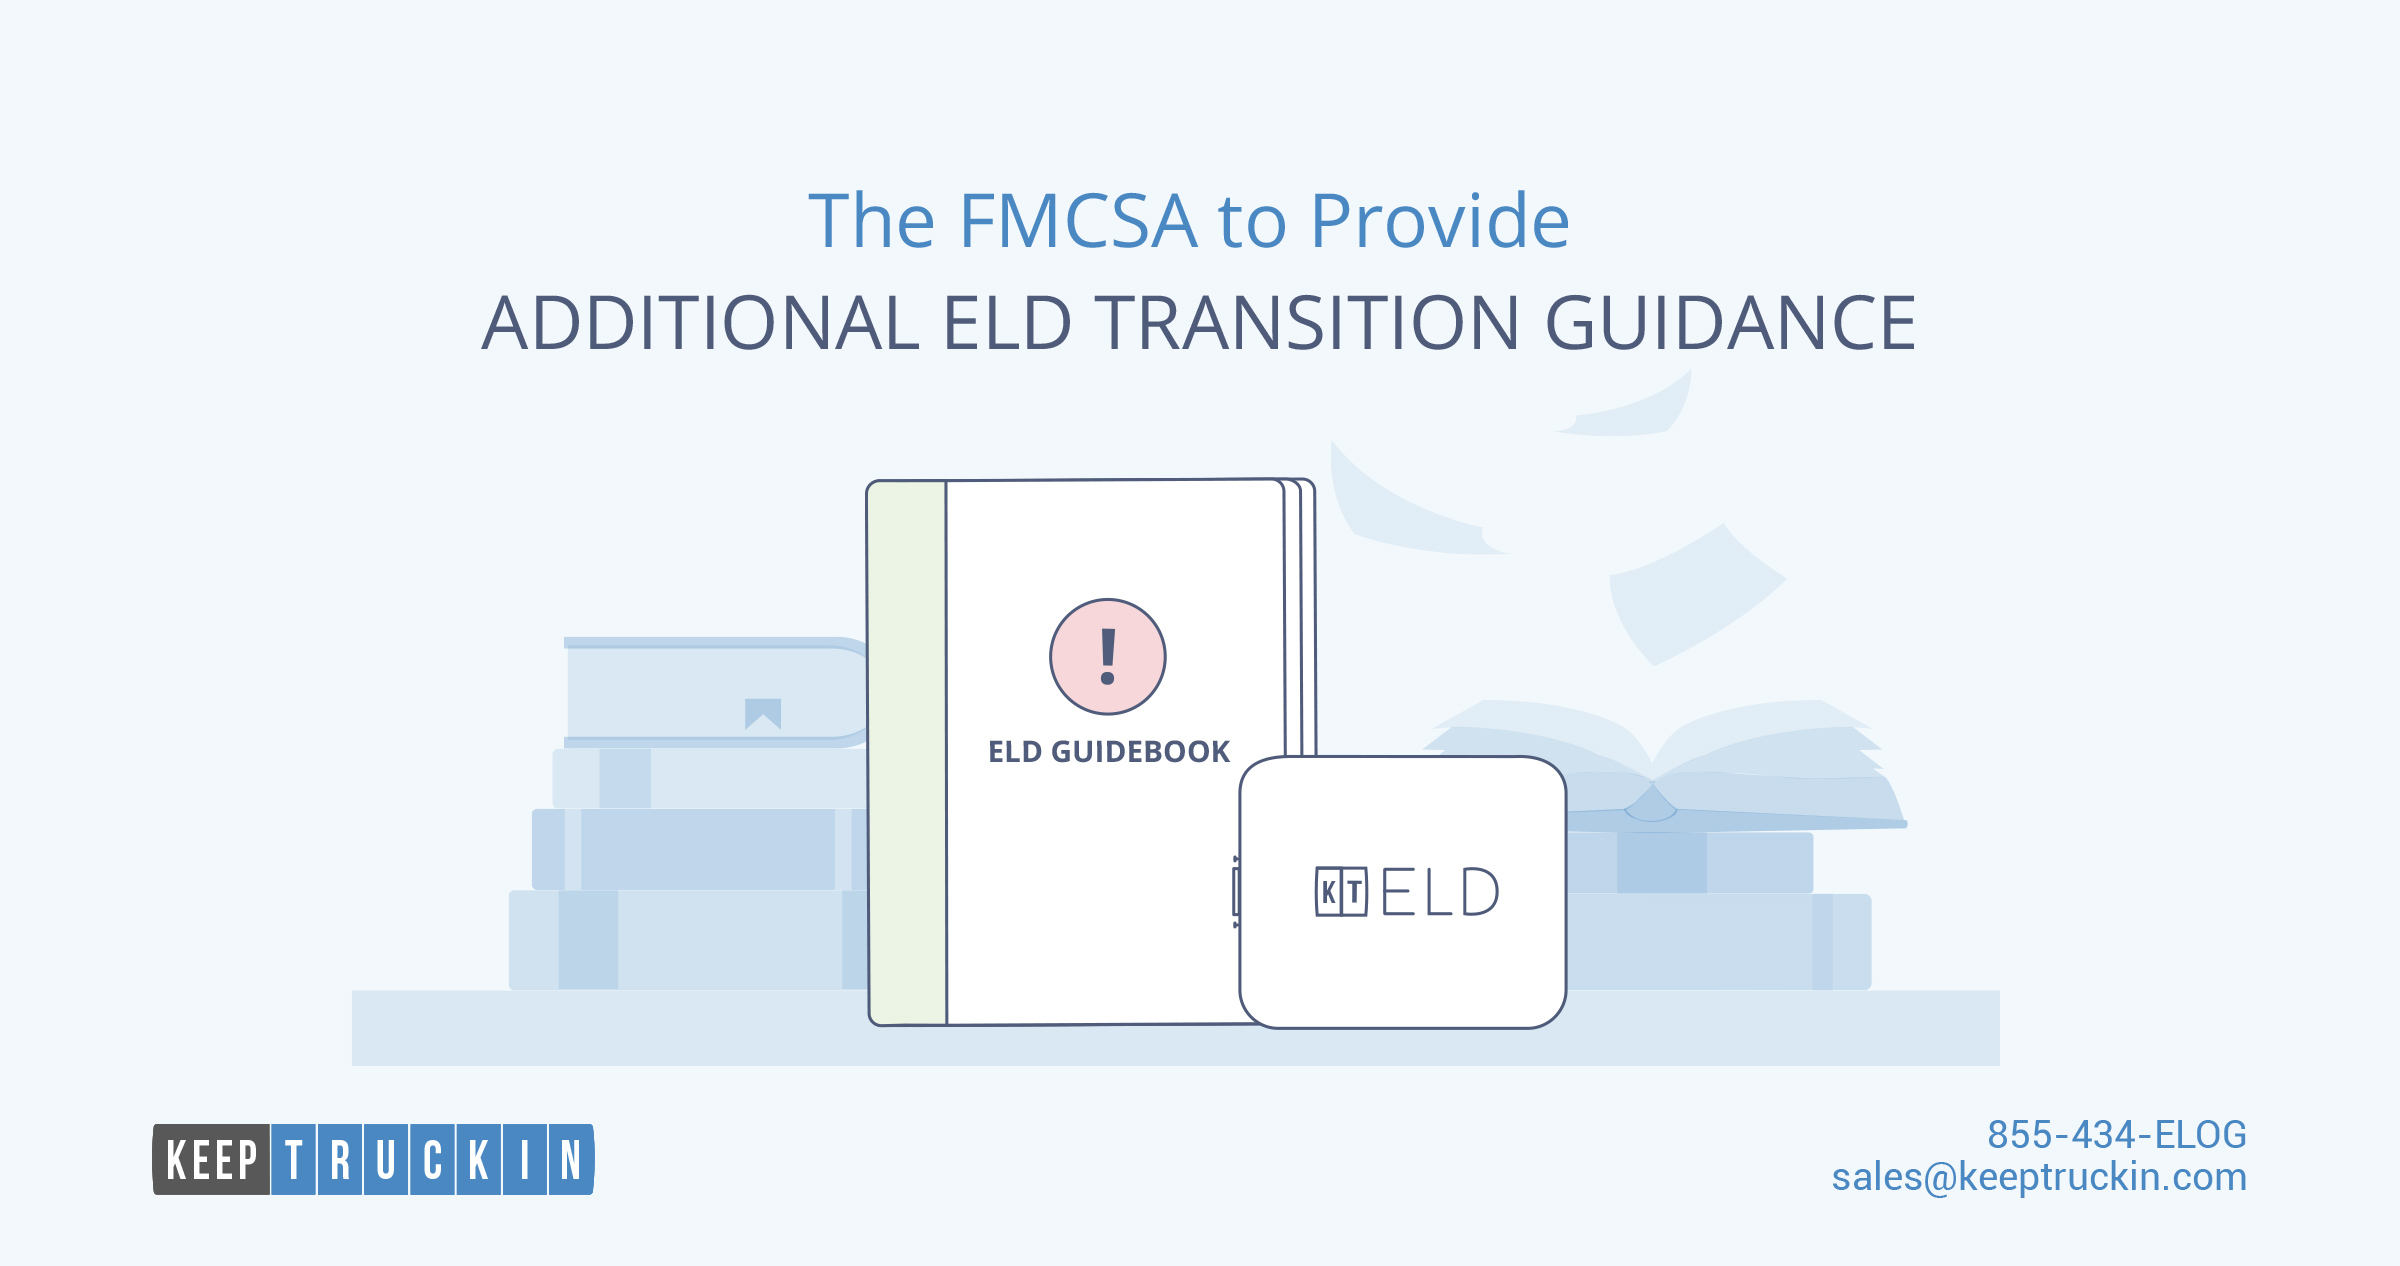 The FMCSA to Provide Additional ELD Transition Guidance